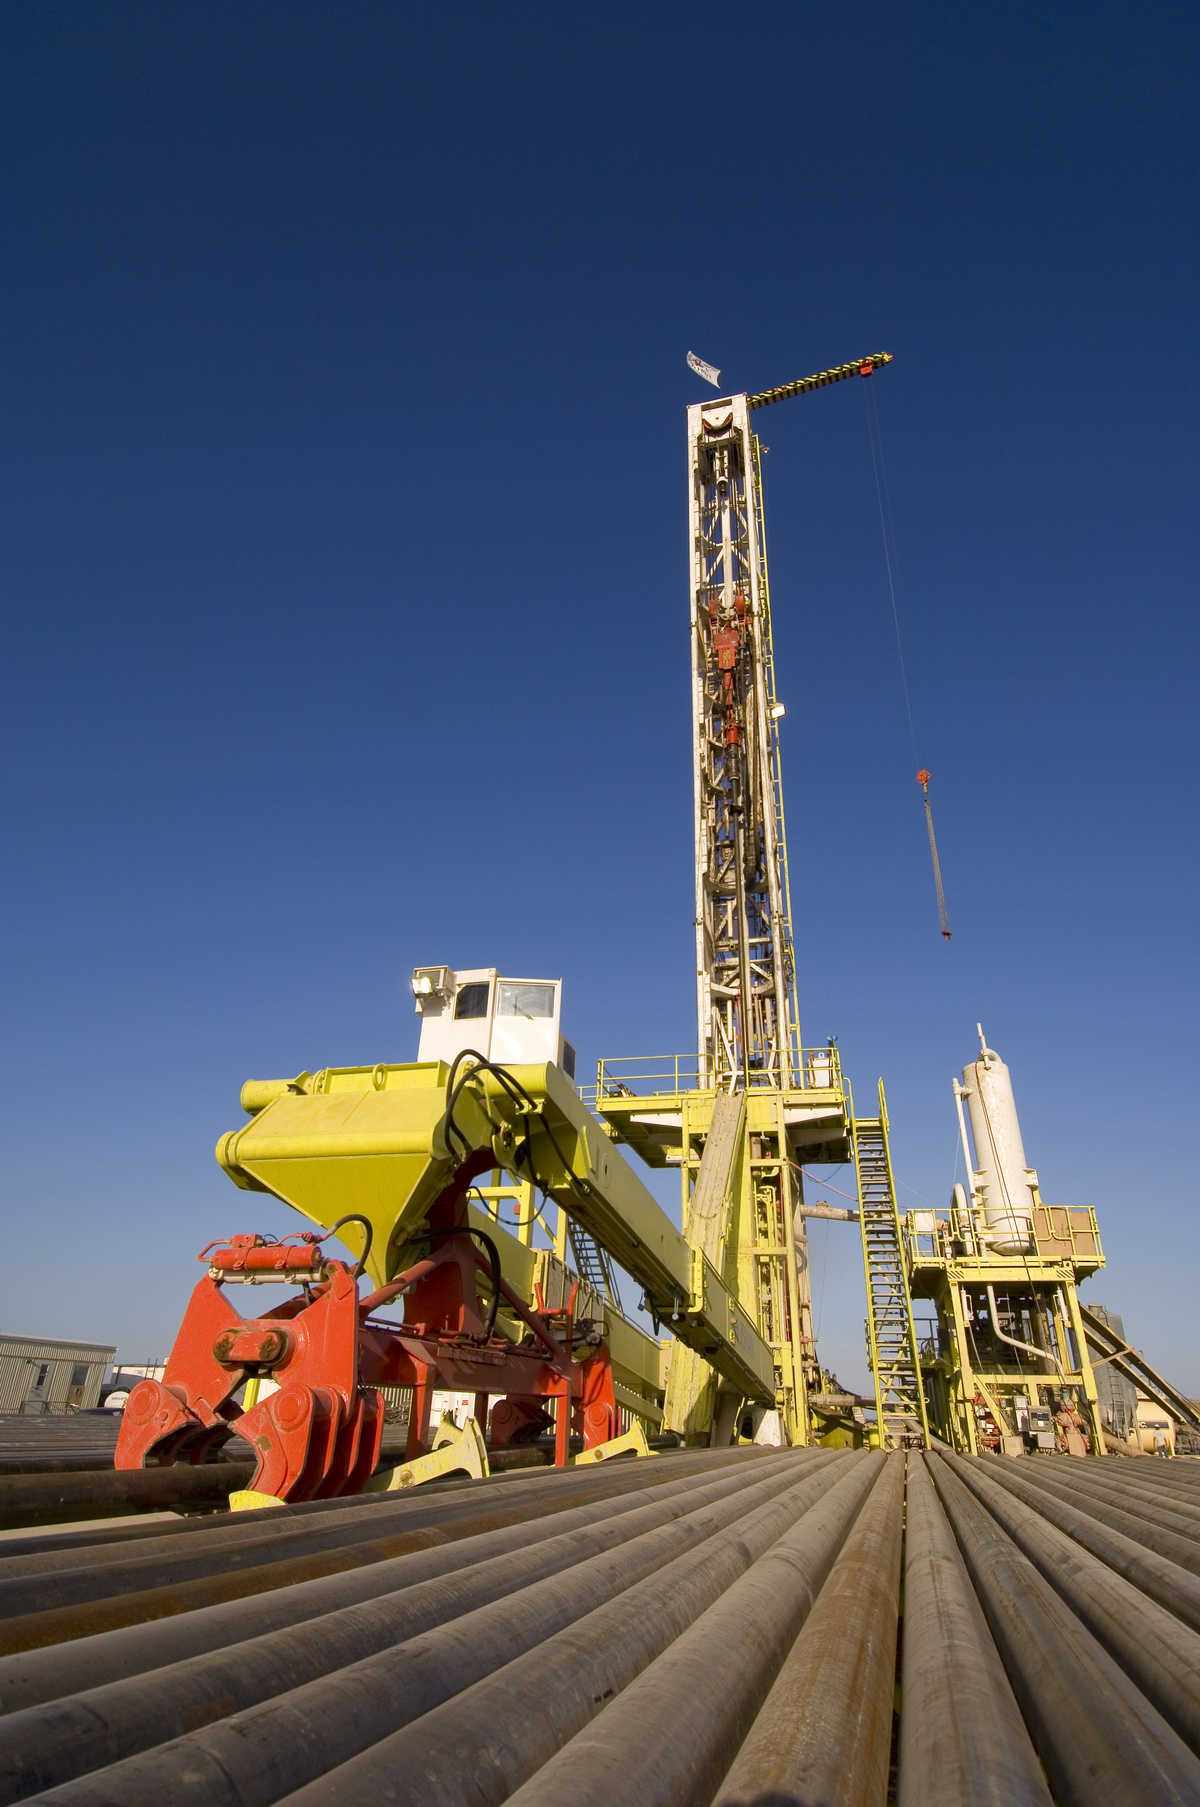 large oil drilling rig